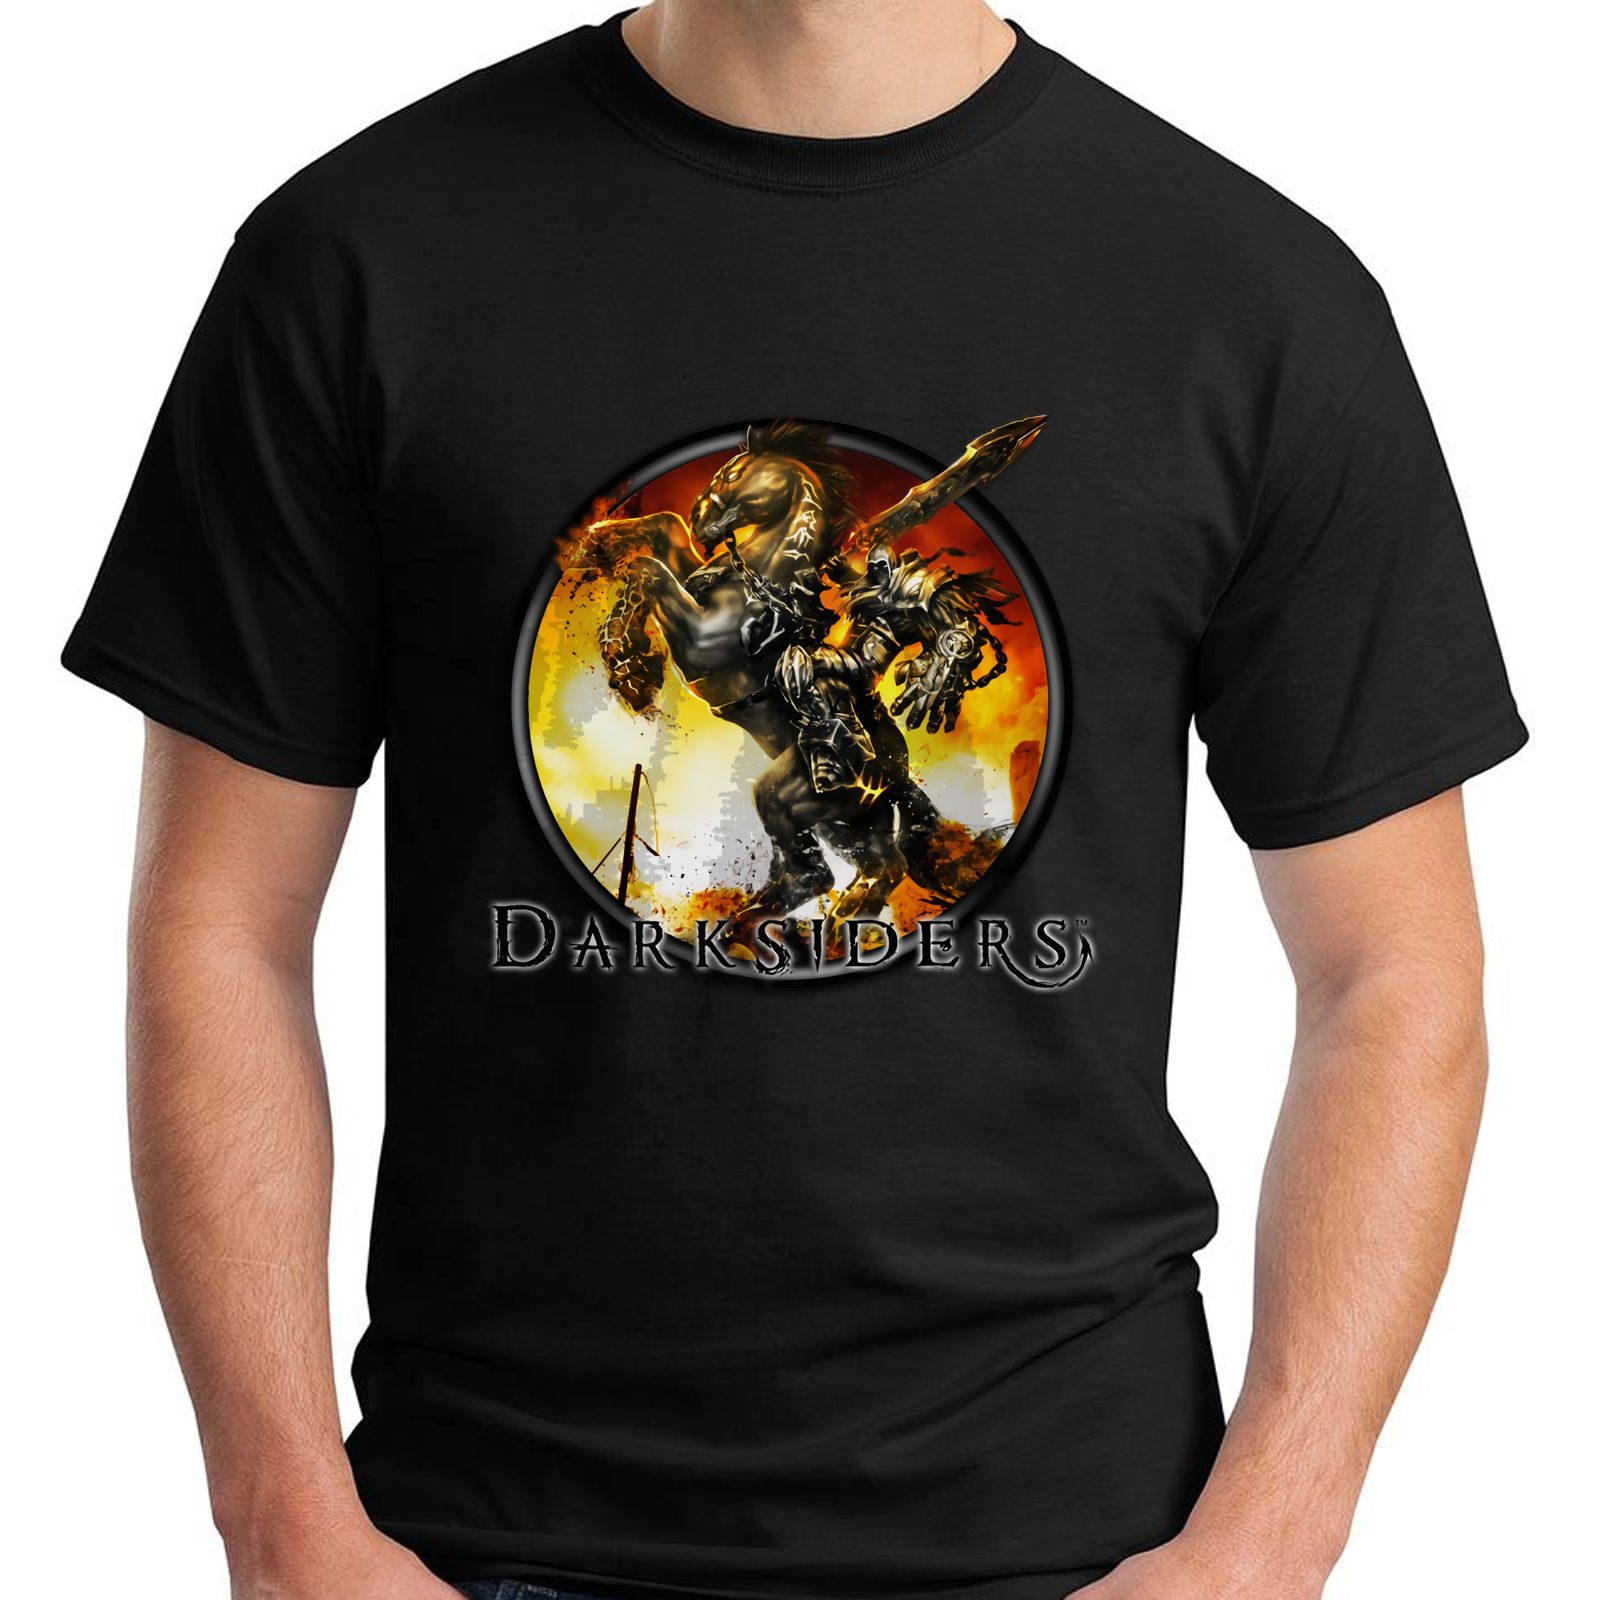 Darksiders Death War Four Horseman Game Darksouls Skyrim Lord Of Shadow T-Shirt O-Neck Oversize Style Tee Shirts Styles